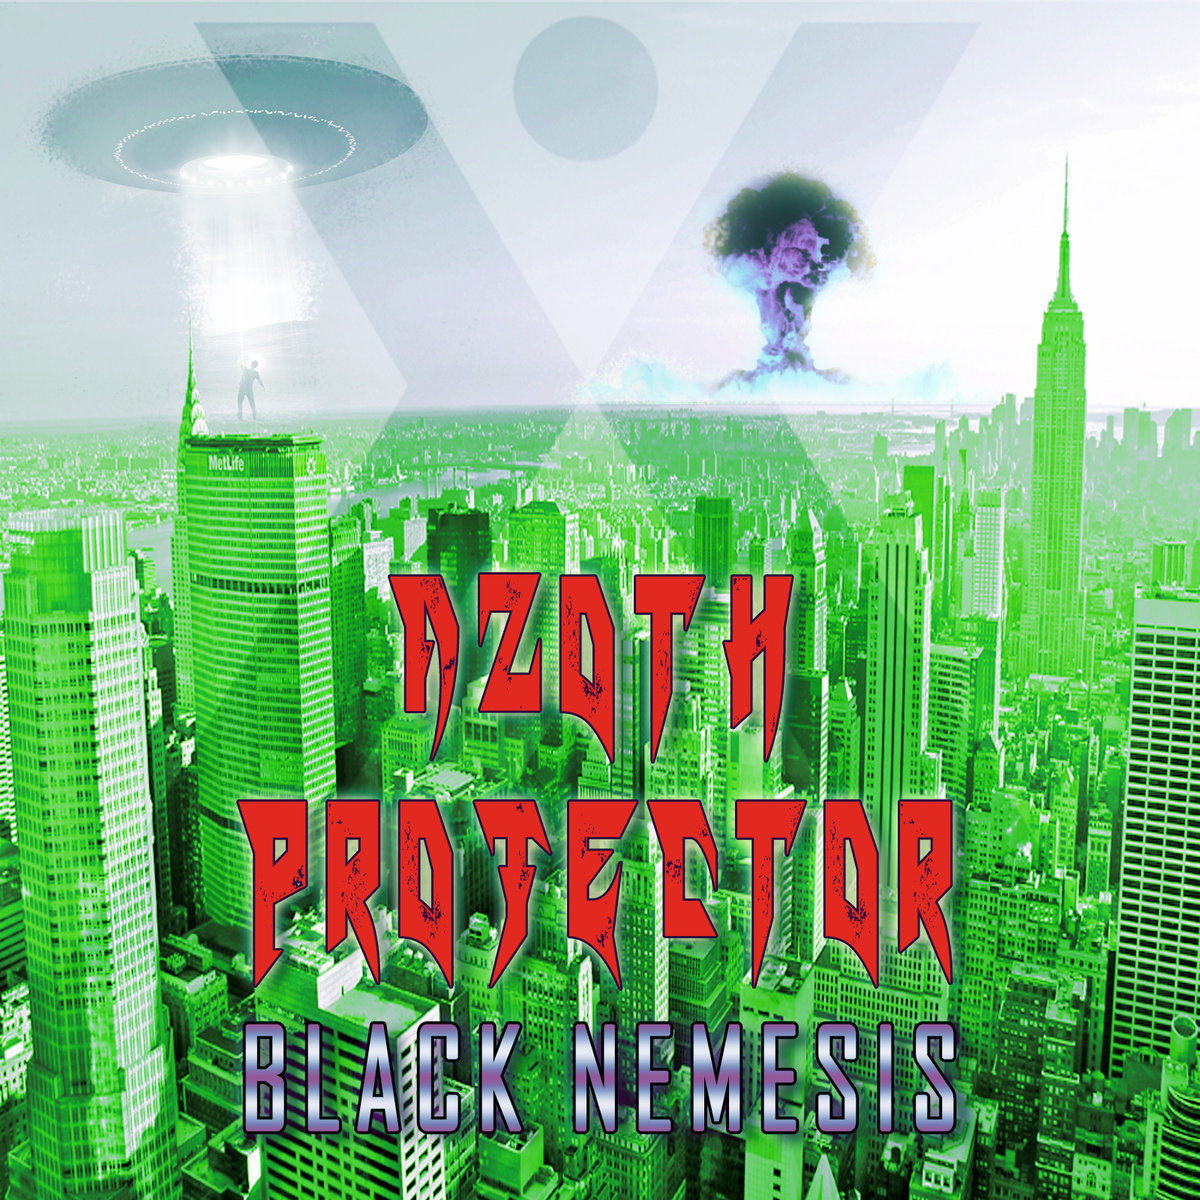 Werkstatt Recordings292. AZOTH PROJECTOR - Black nemesis-Werkstatt Recordings-Art